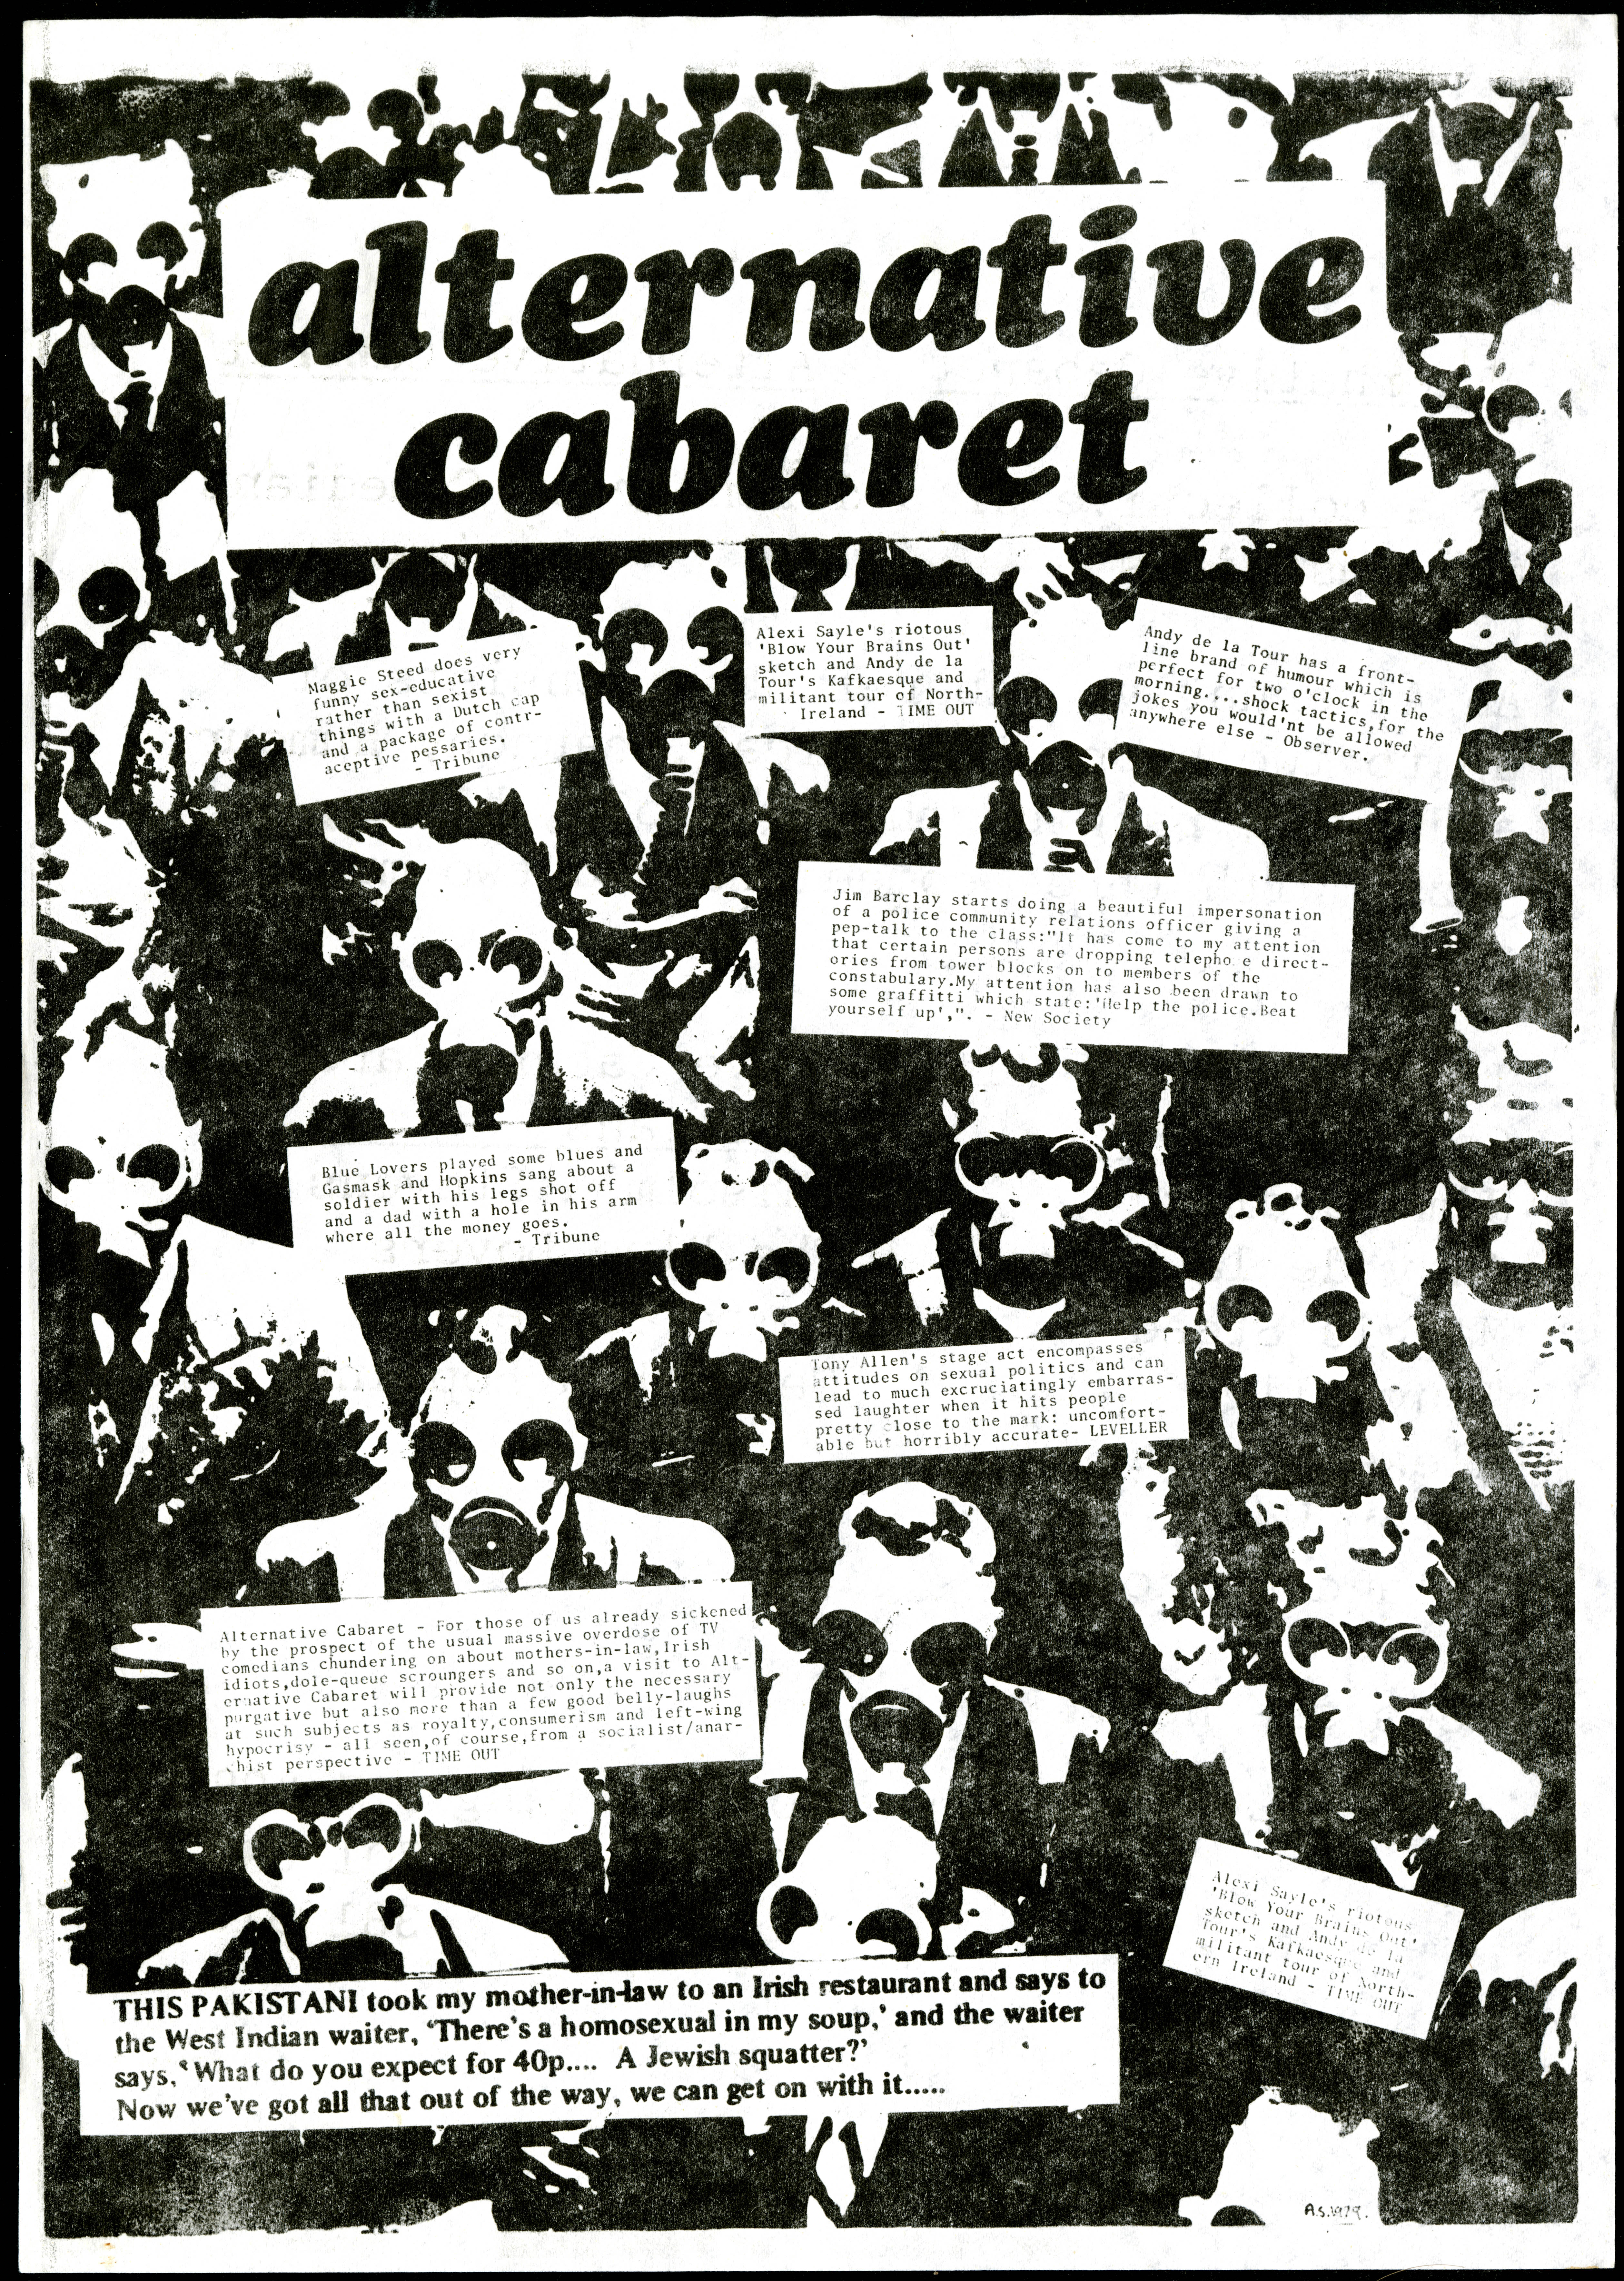 Flyer advertising the Alternative Cabaret collective